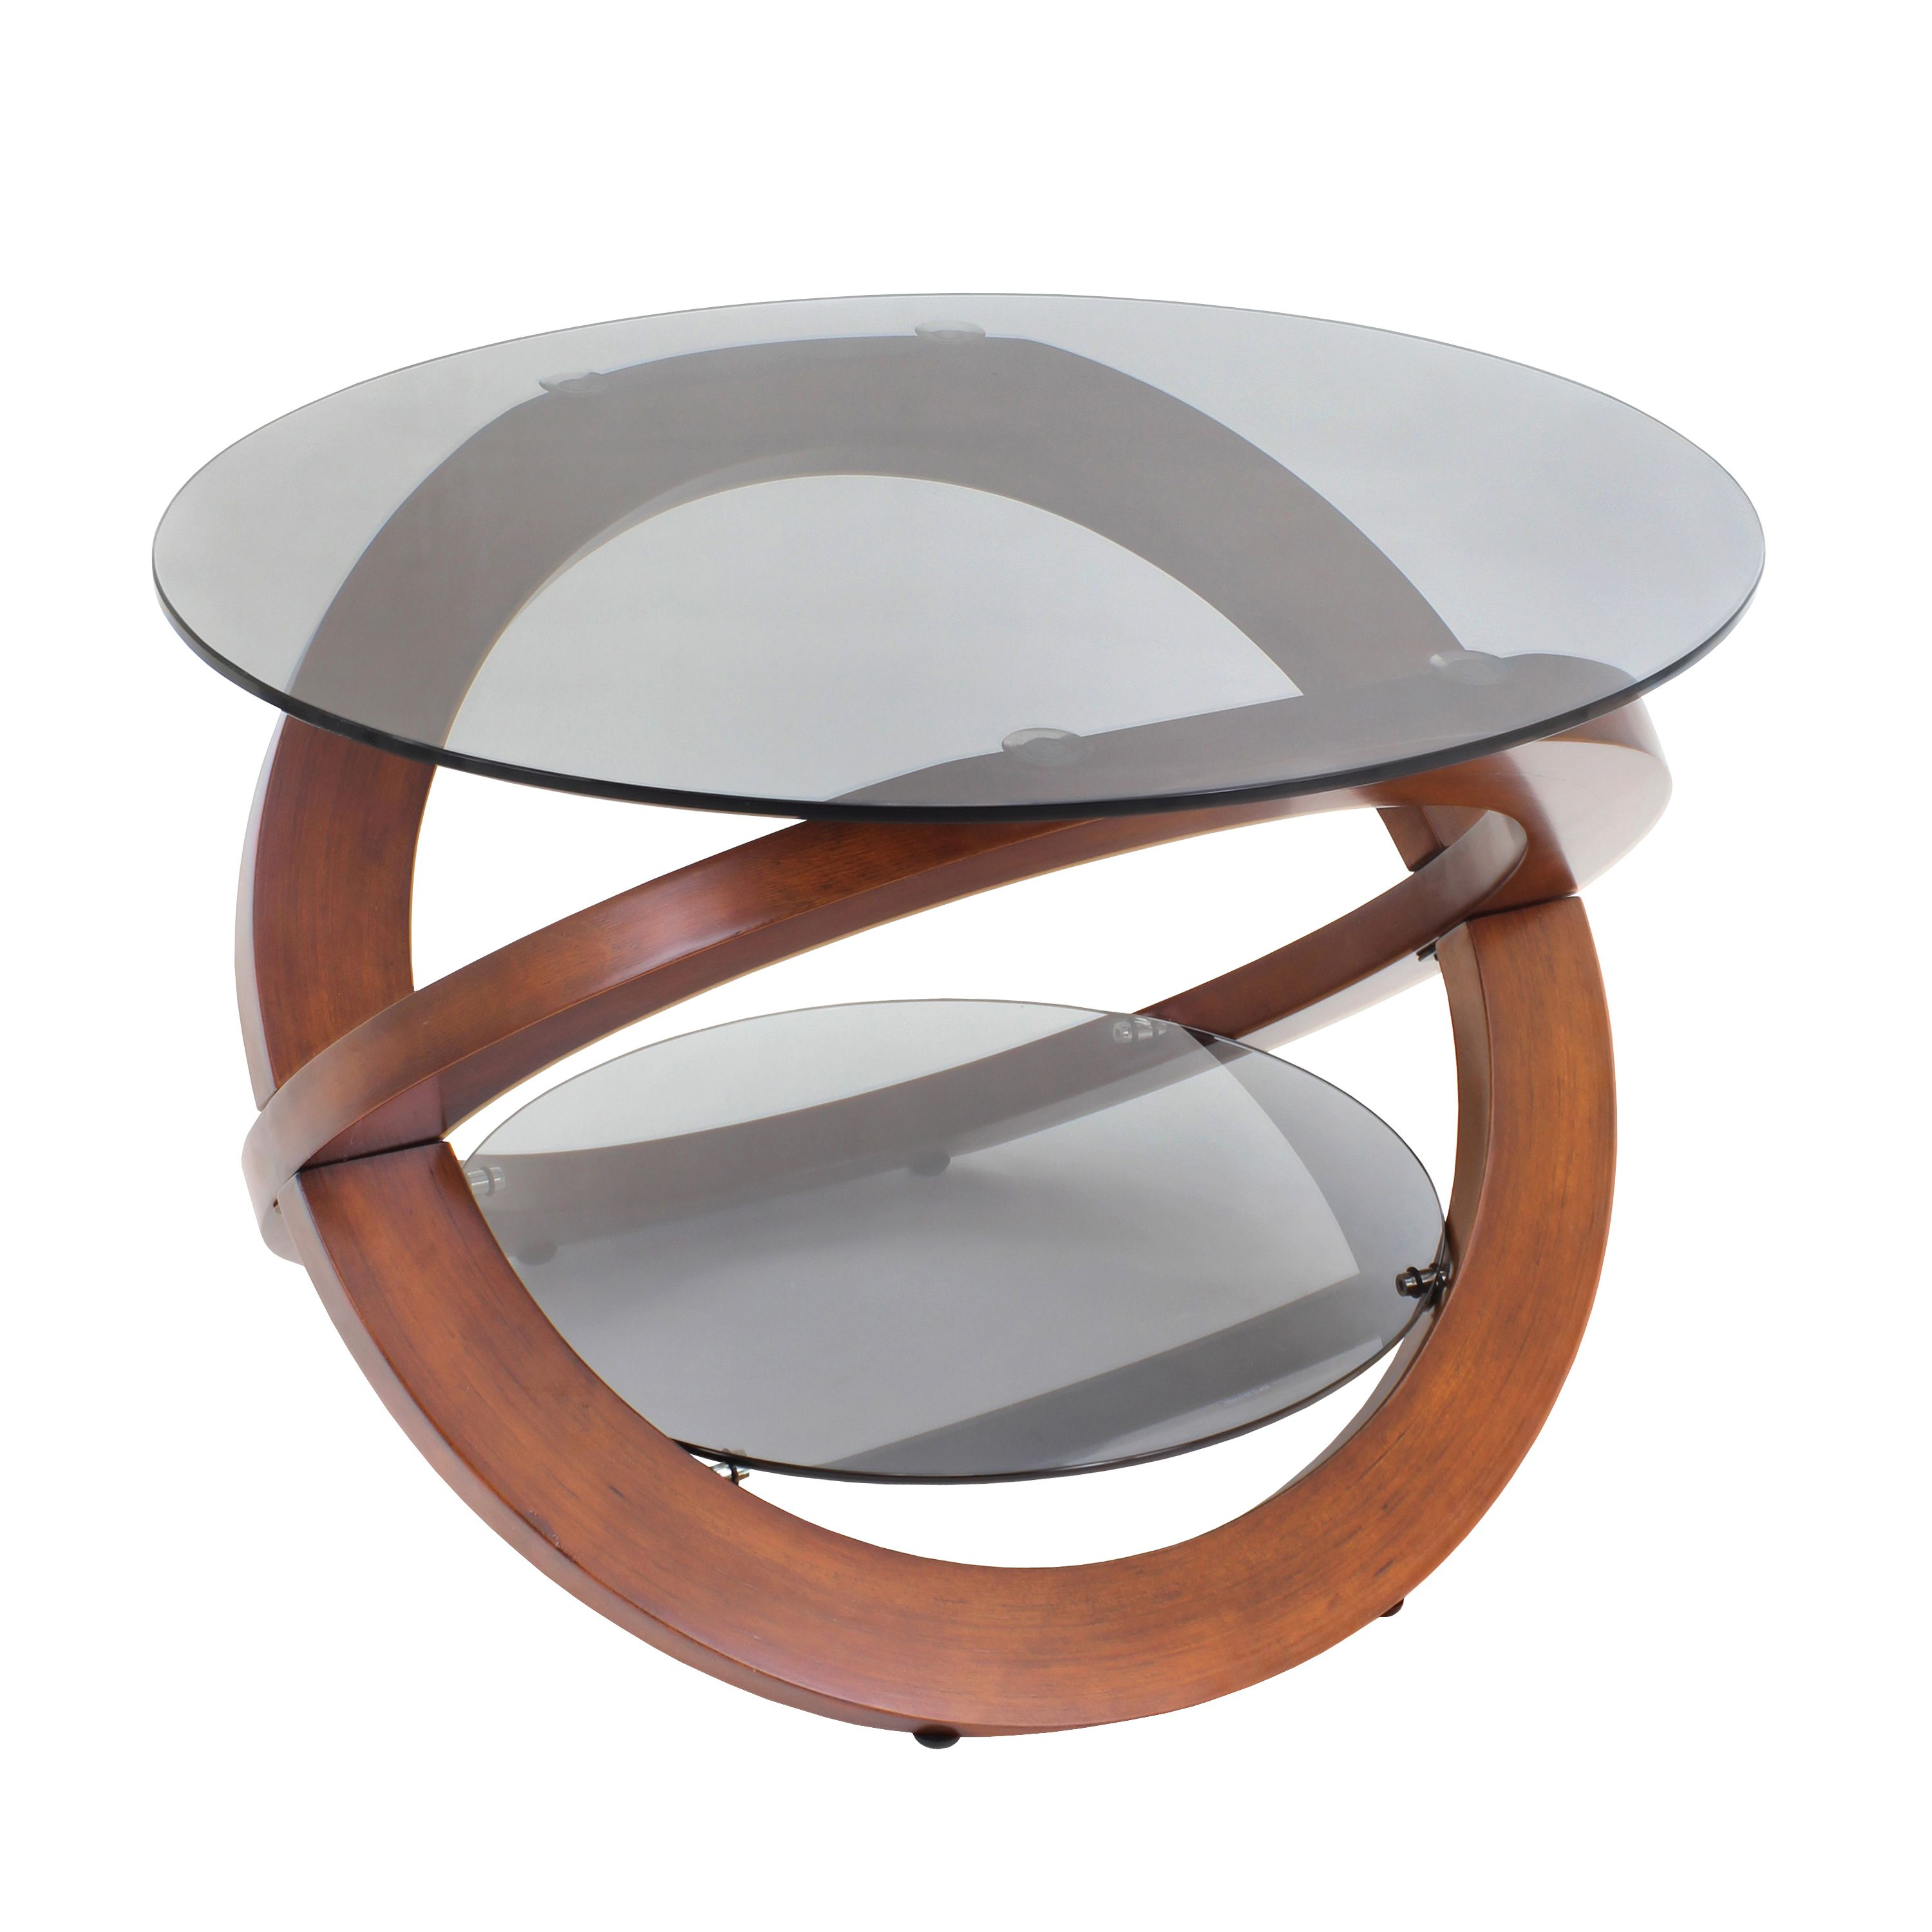 Smart Furnishing Tips For Small Spaces Bellacor Bright Ideas Blog Modern Coffee Tables Coffee Table Modern Glass Coffee Table [ 3000 x 3000 Pixel ]